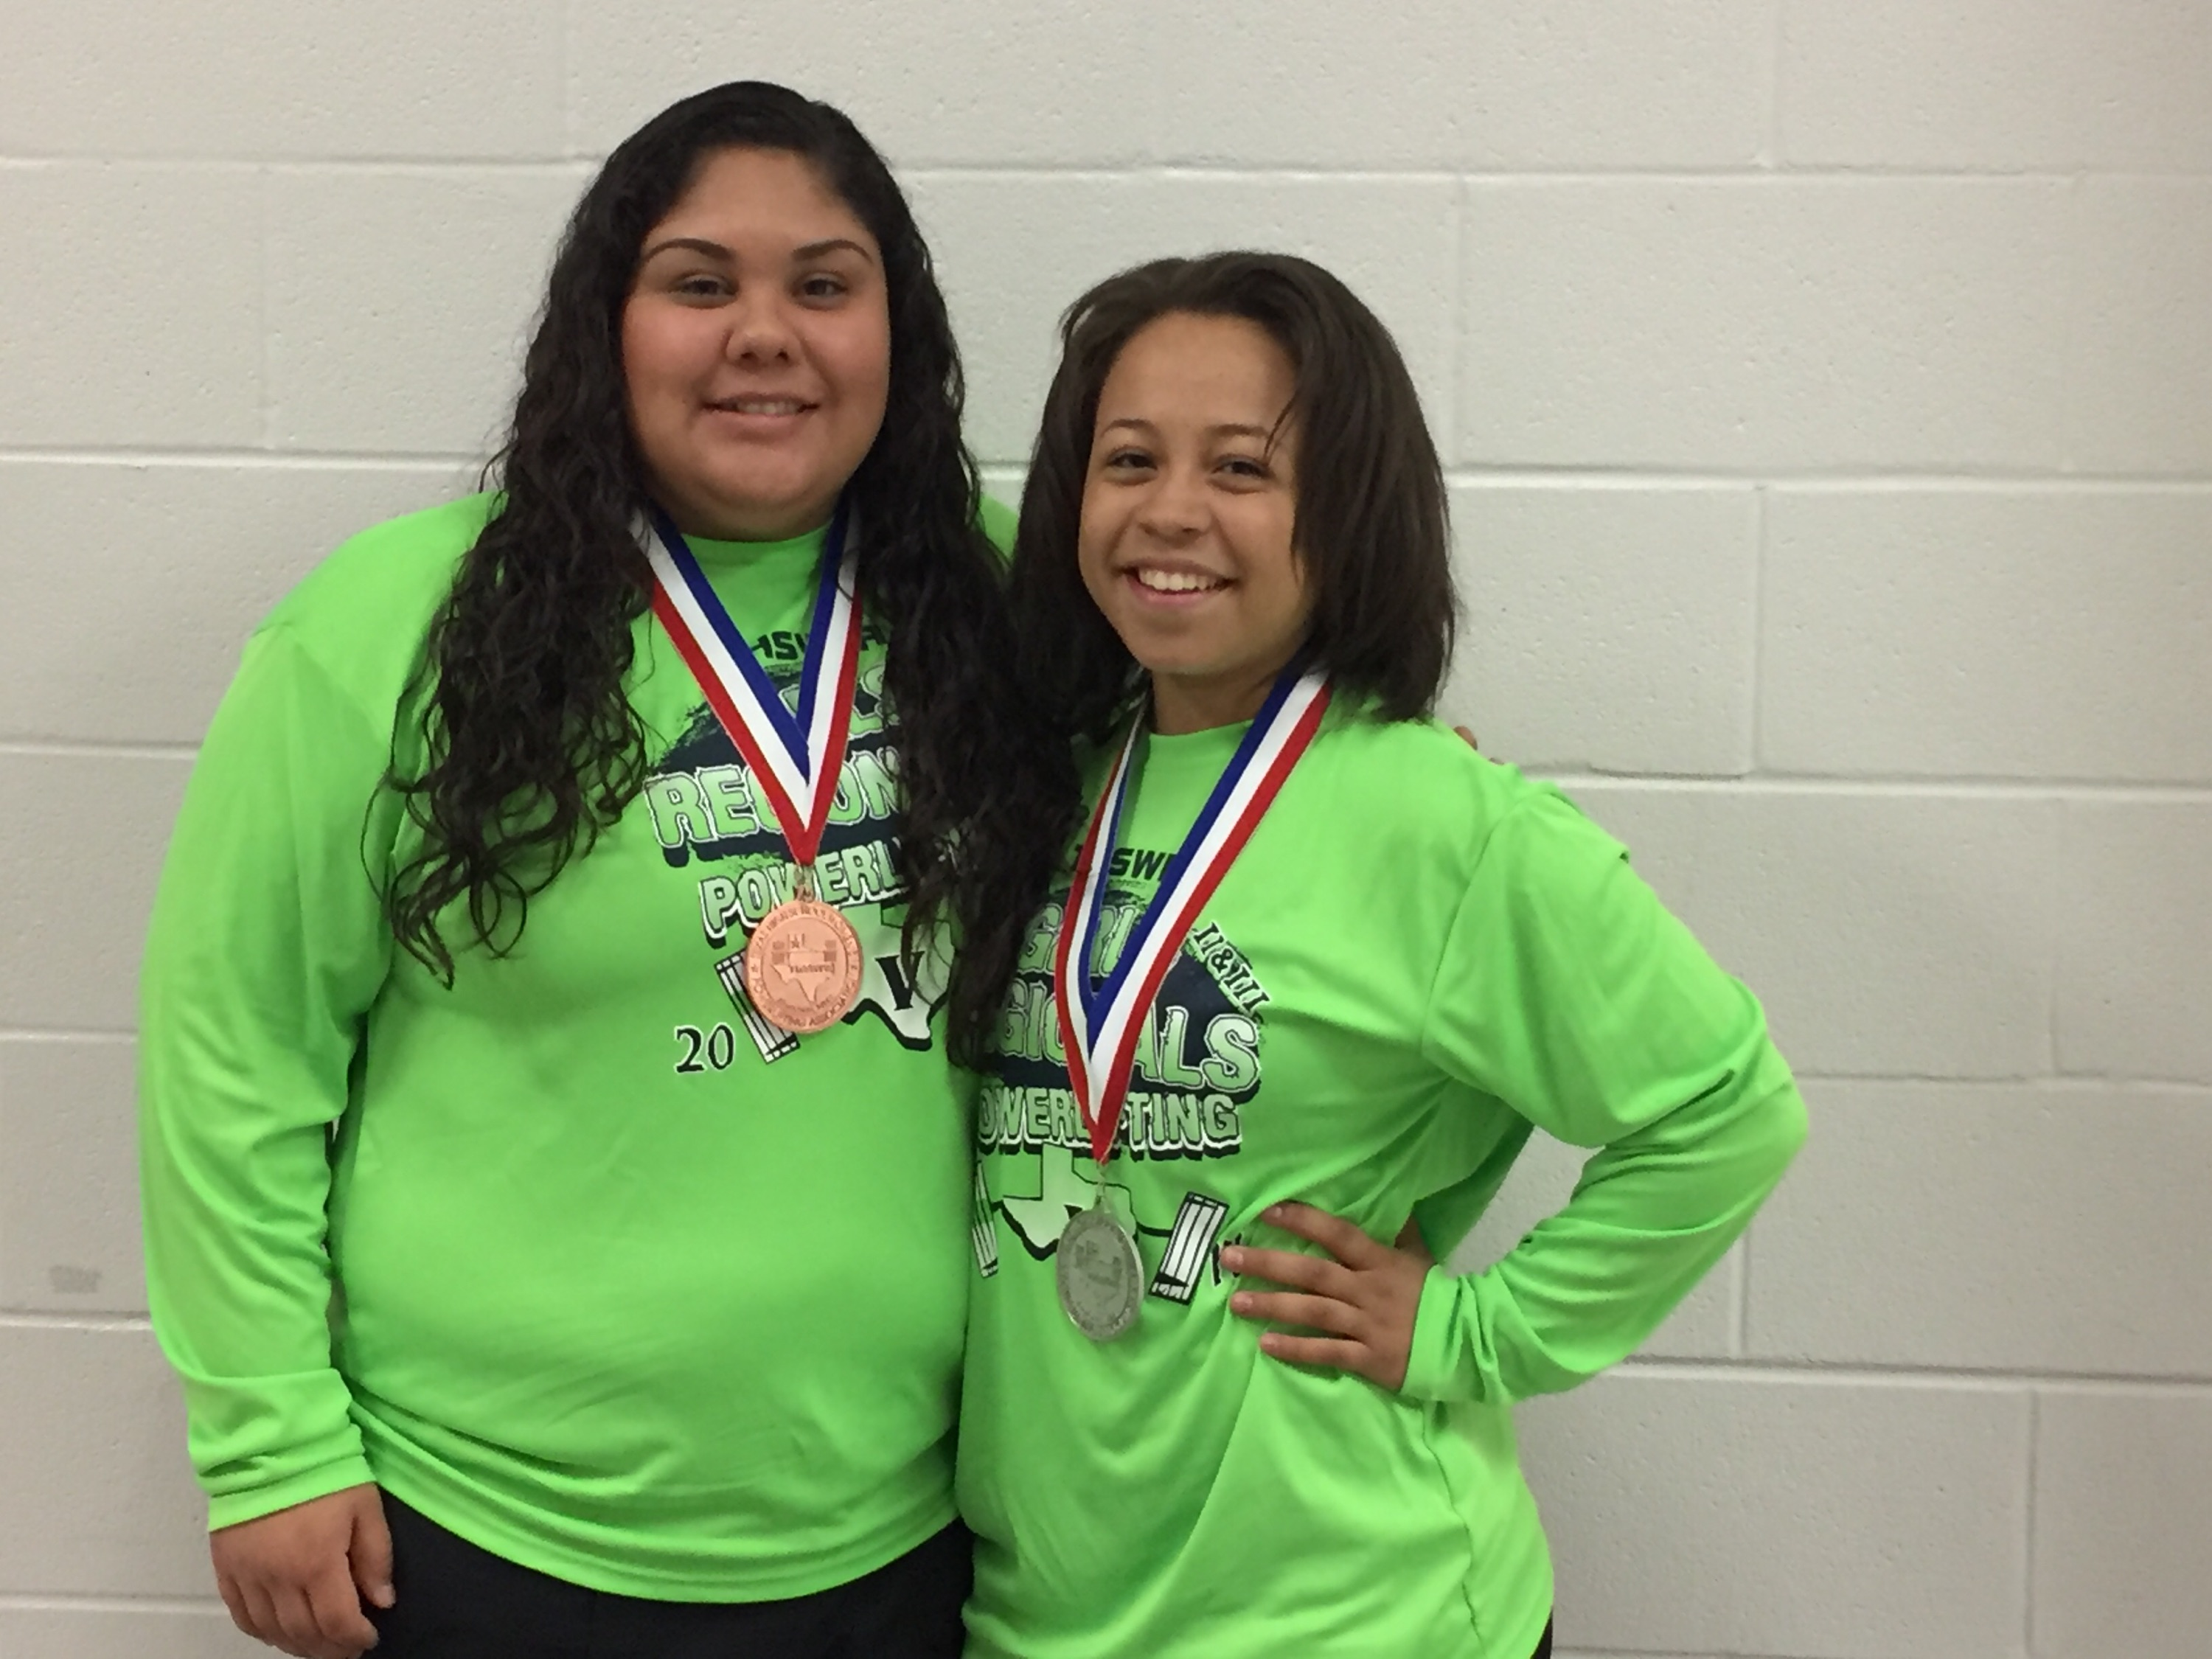 Jacklyn Perez & Kiersten Paul at Regional Powerlifting Meet.